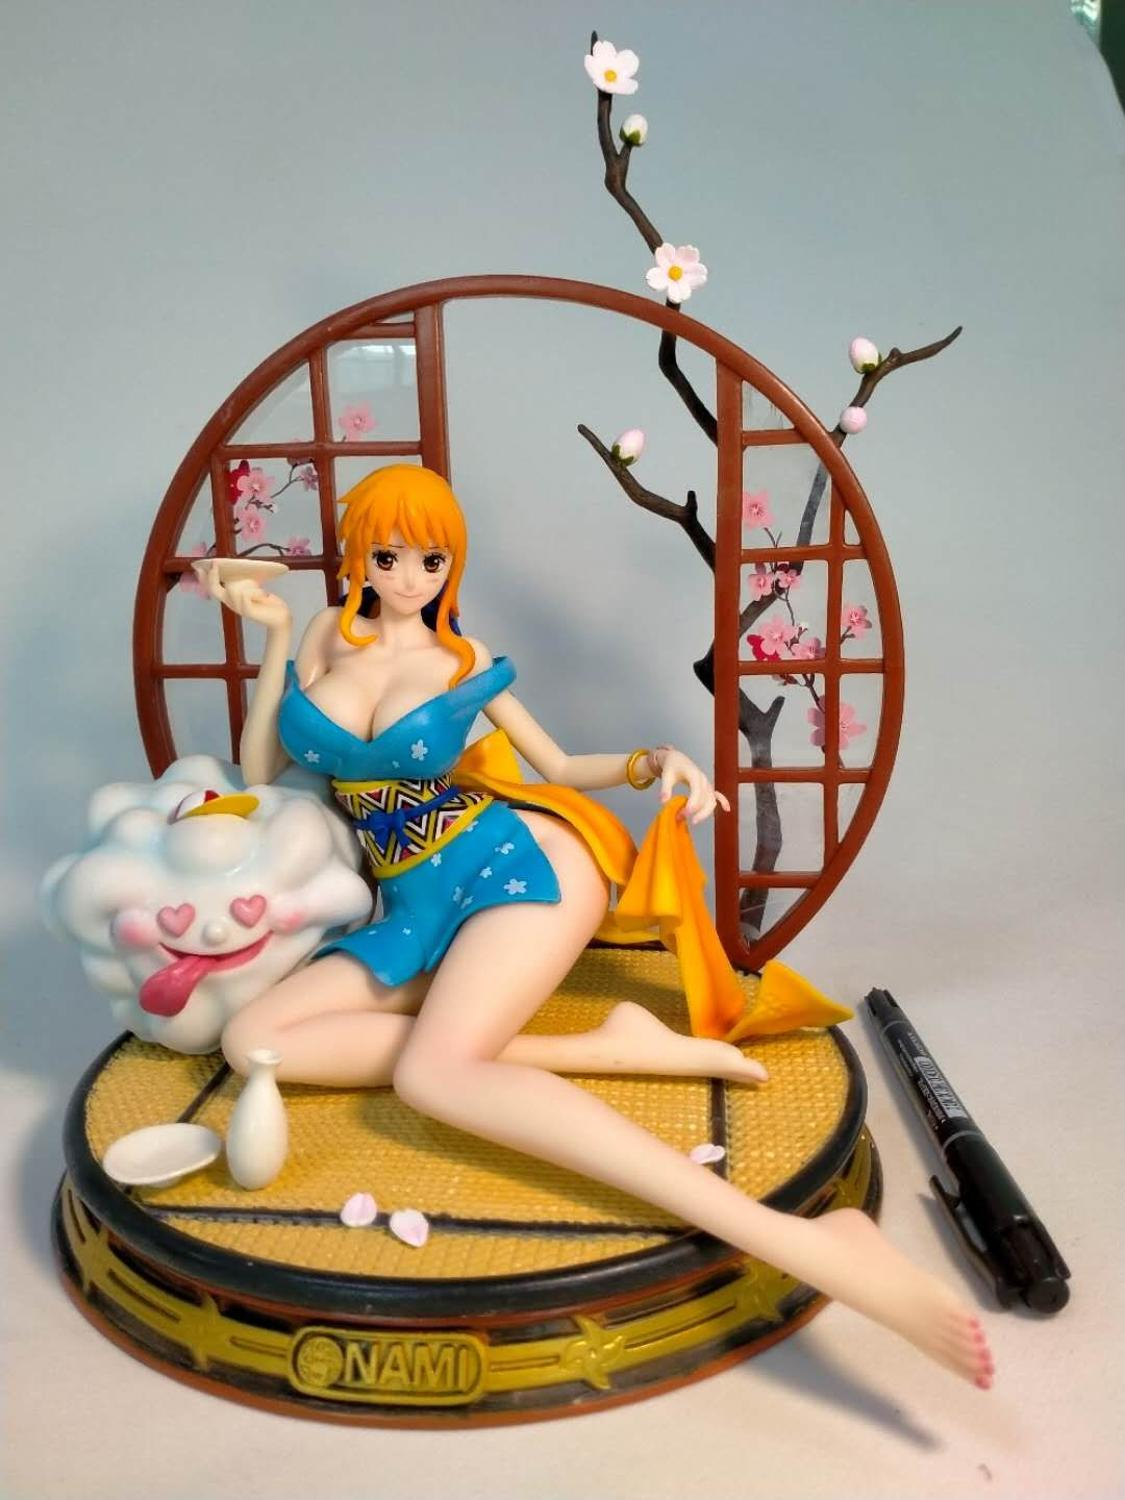 New Anime ONE PIECE GK Nico Robin Statue Large 1//7 Action Figure